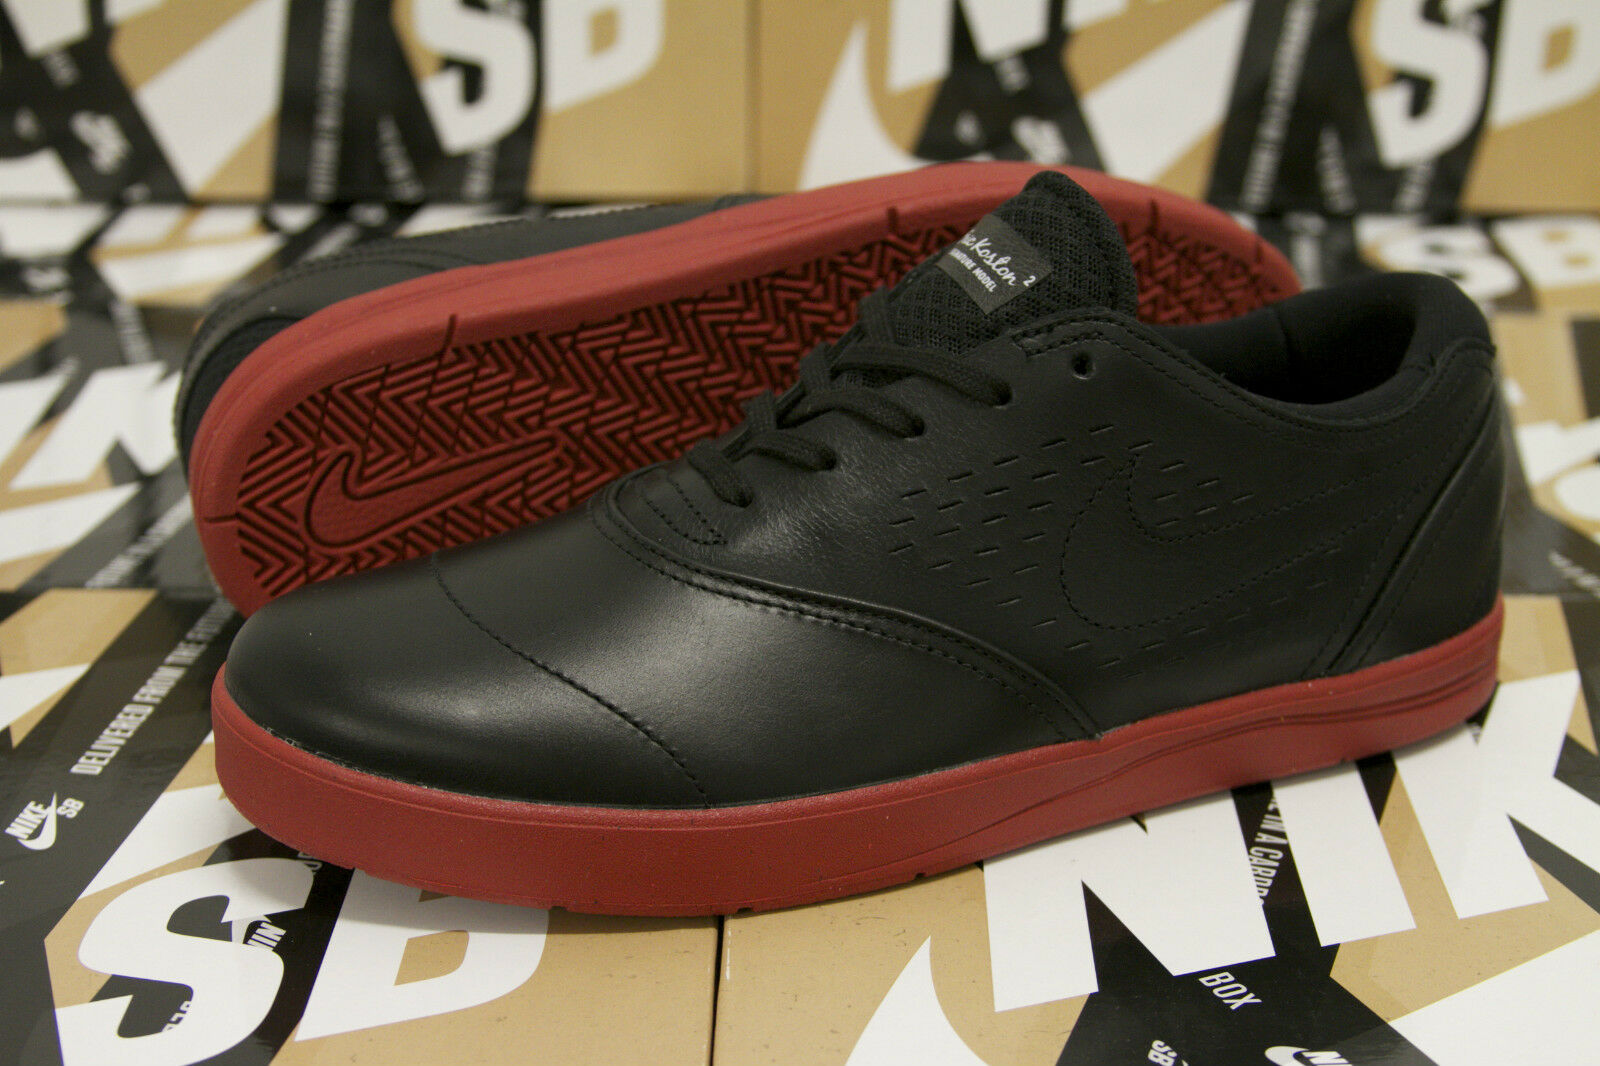 Nike SB Eric Koston 2 Premium BLACK LEATHER TERRA COTTA 599658 008 SIZE 8